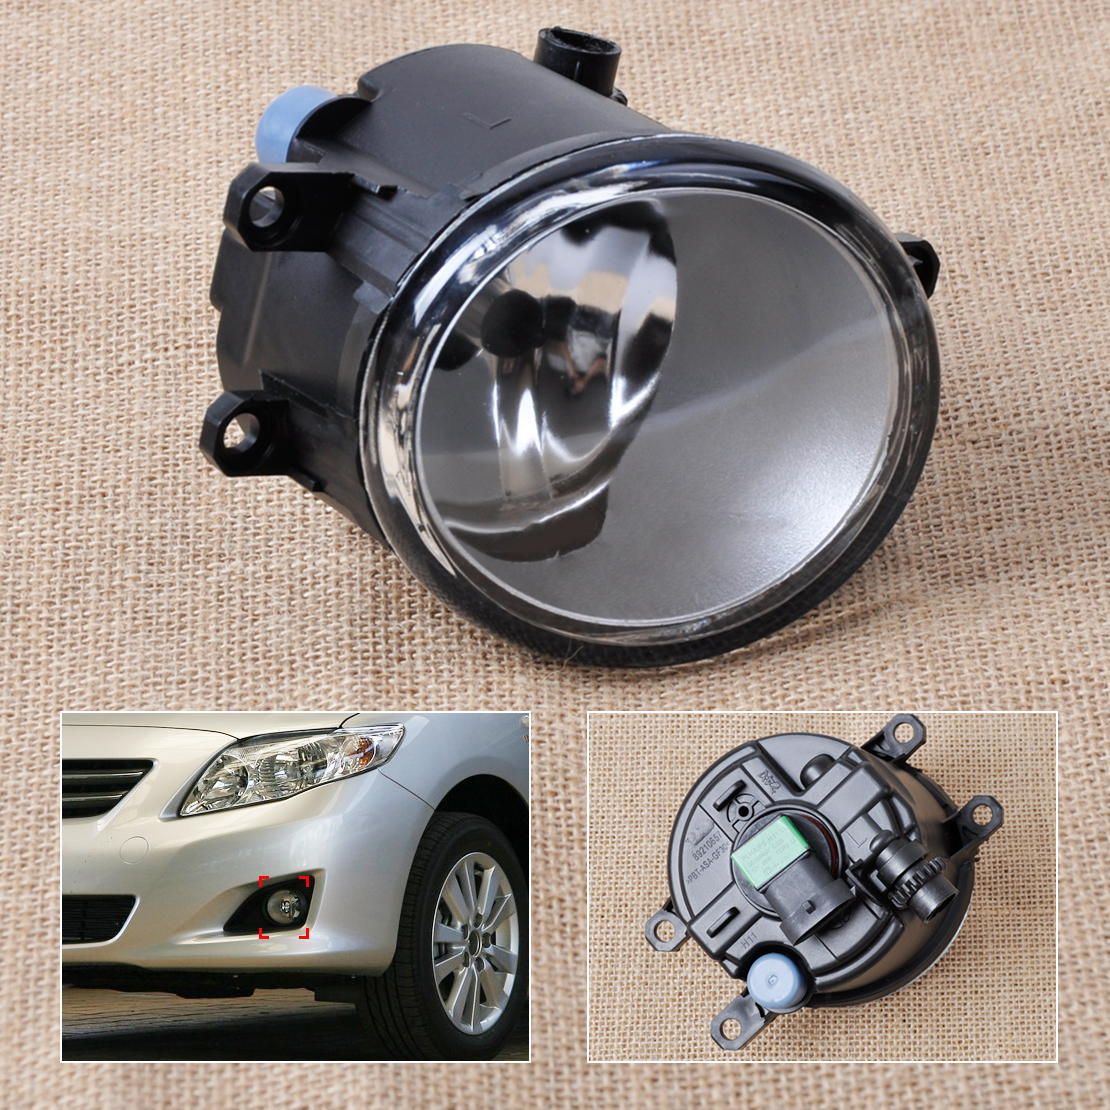 beler Front Left Side Fog light Lamp 81210-06050 35502-57L01 For Toyota Camry Corolla Yaris Prius Lexus GS350 GS450h HS250h special car trunk mats for toyota all models corolla camry rav4 auris prius yalis avensis 2014 accessories car styling auto